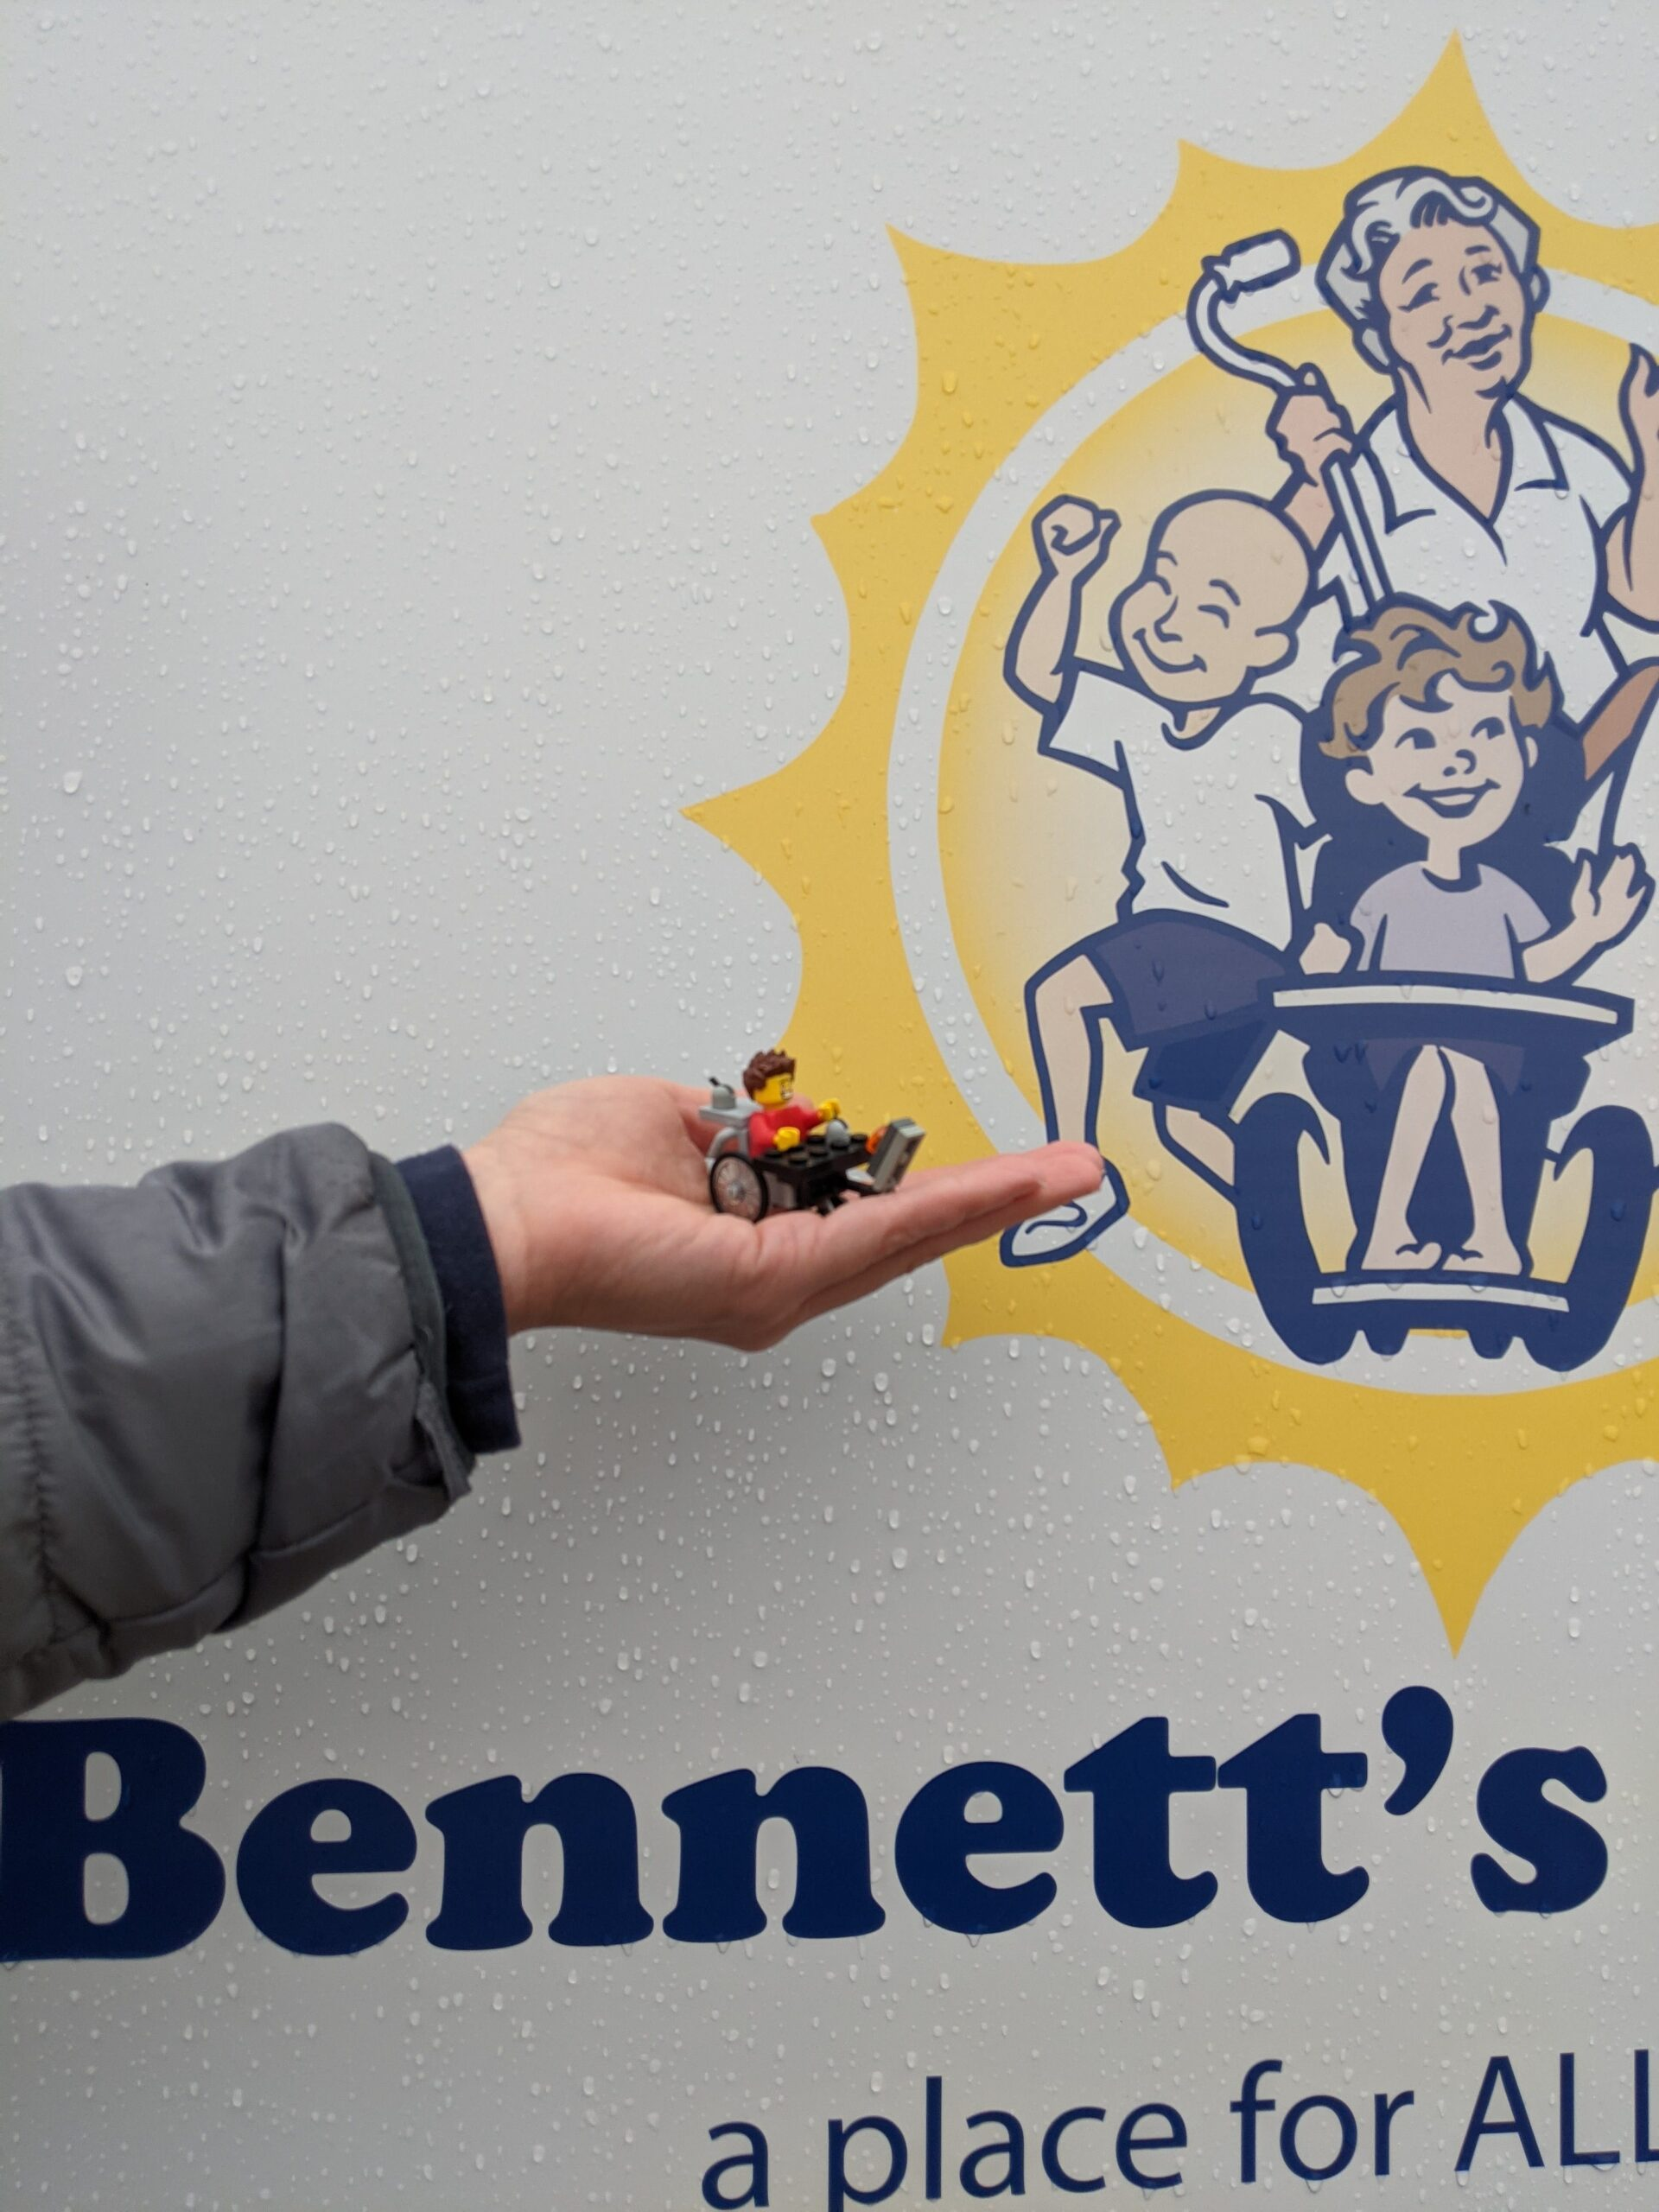 Lego Ben in his wheelchair is being held next to the Future Home of Bennett's Village sign. Lego Ben has brown, wavy hair, a huge smile, and a red shirt.